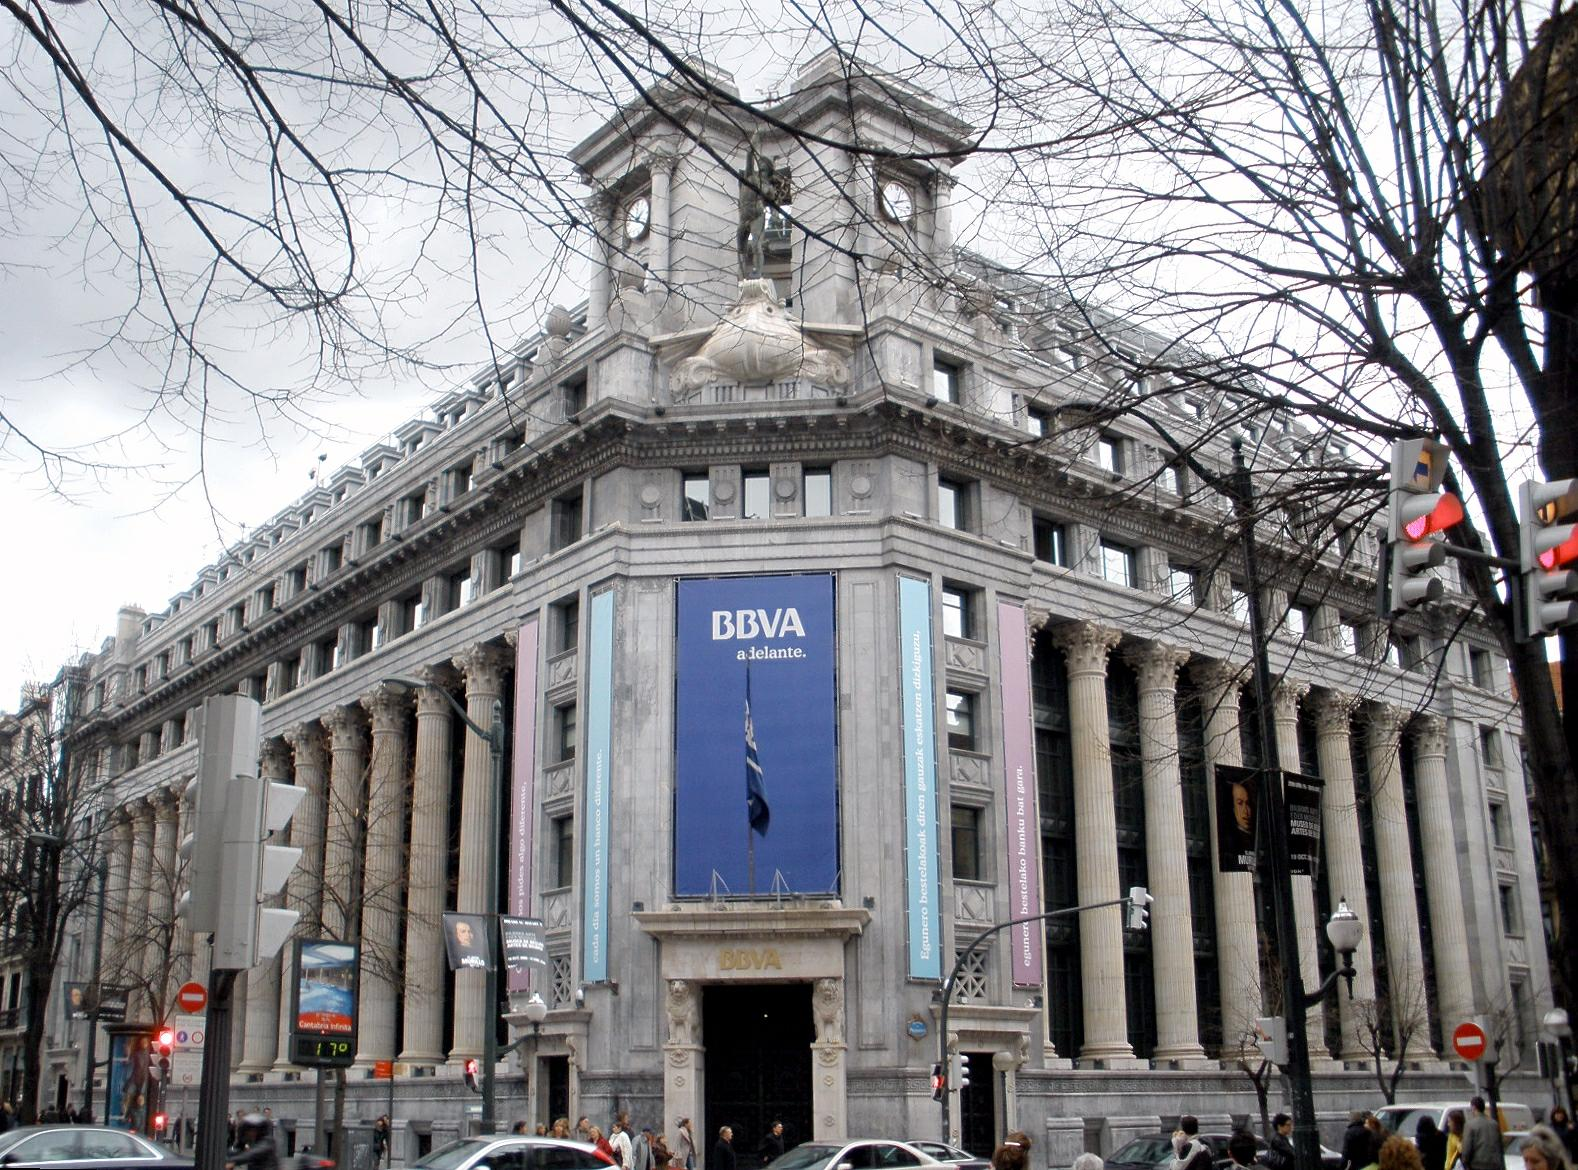 BBVA is the second-largest bank in Spain (source: Zarateman / Wikipedia Commons)